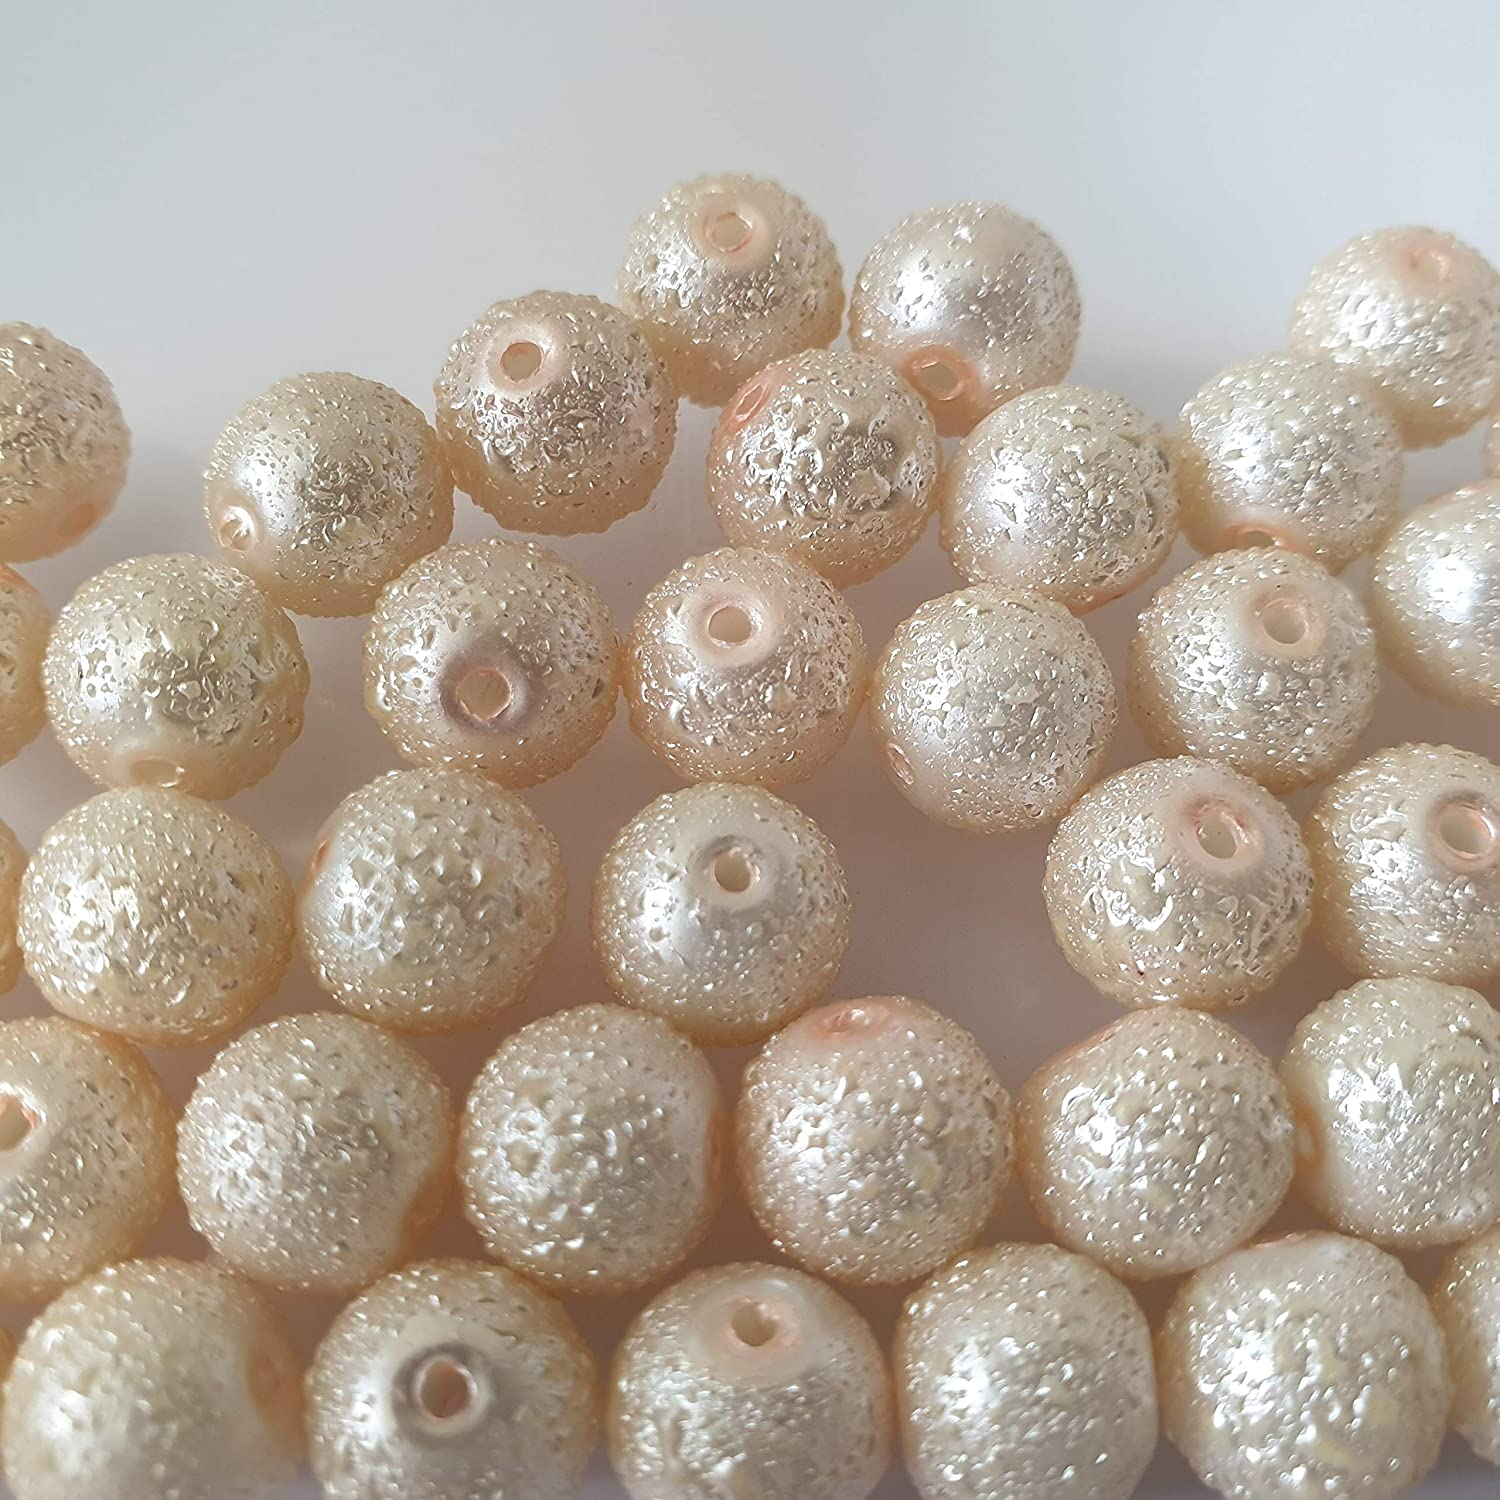 KB0737 moon effect surface 6mm Pale Pink 100 Pcs 6mm Textured Glass Pearl Beads